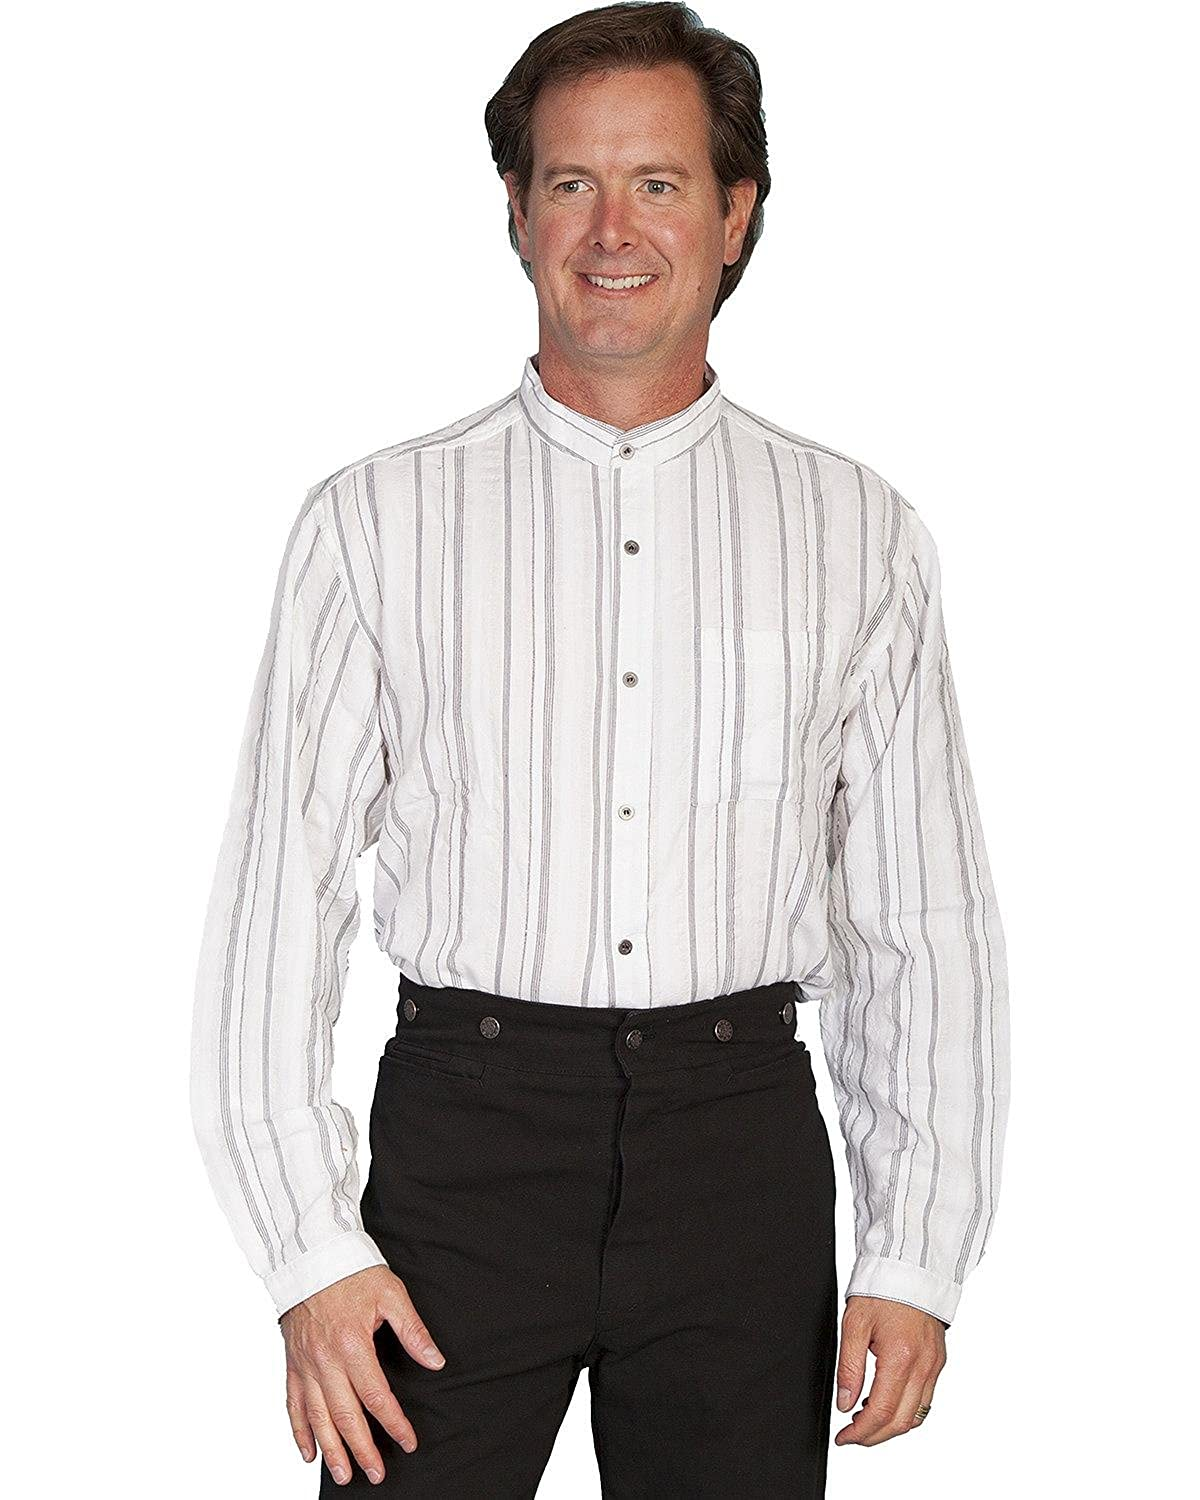 Great Gatsby White Suit- Get the Leonardo DiCaprio Look Scully One of Our Best Selling Shirts - White $49.99 AT vintagedancer.com